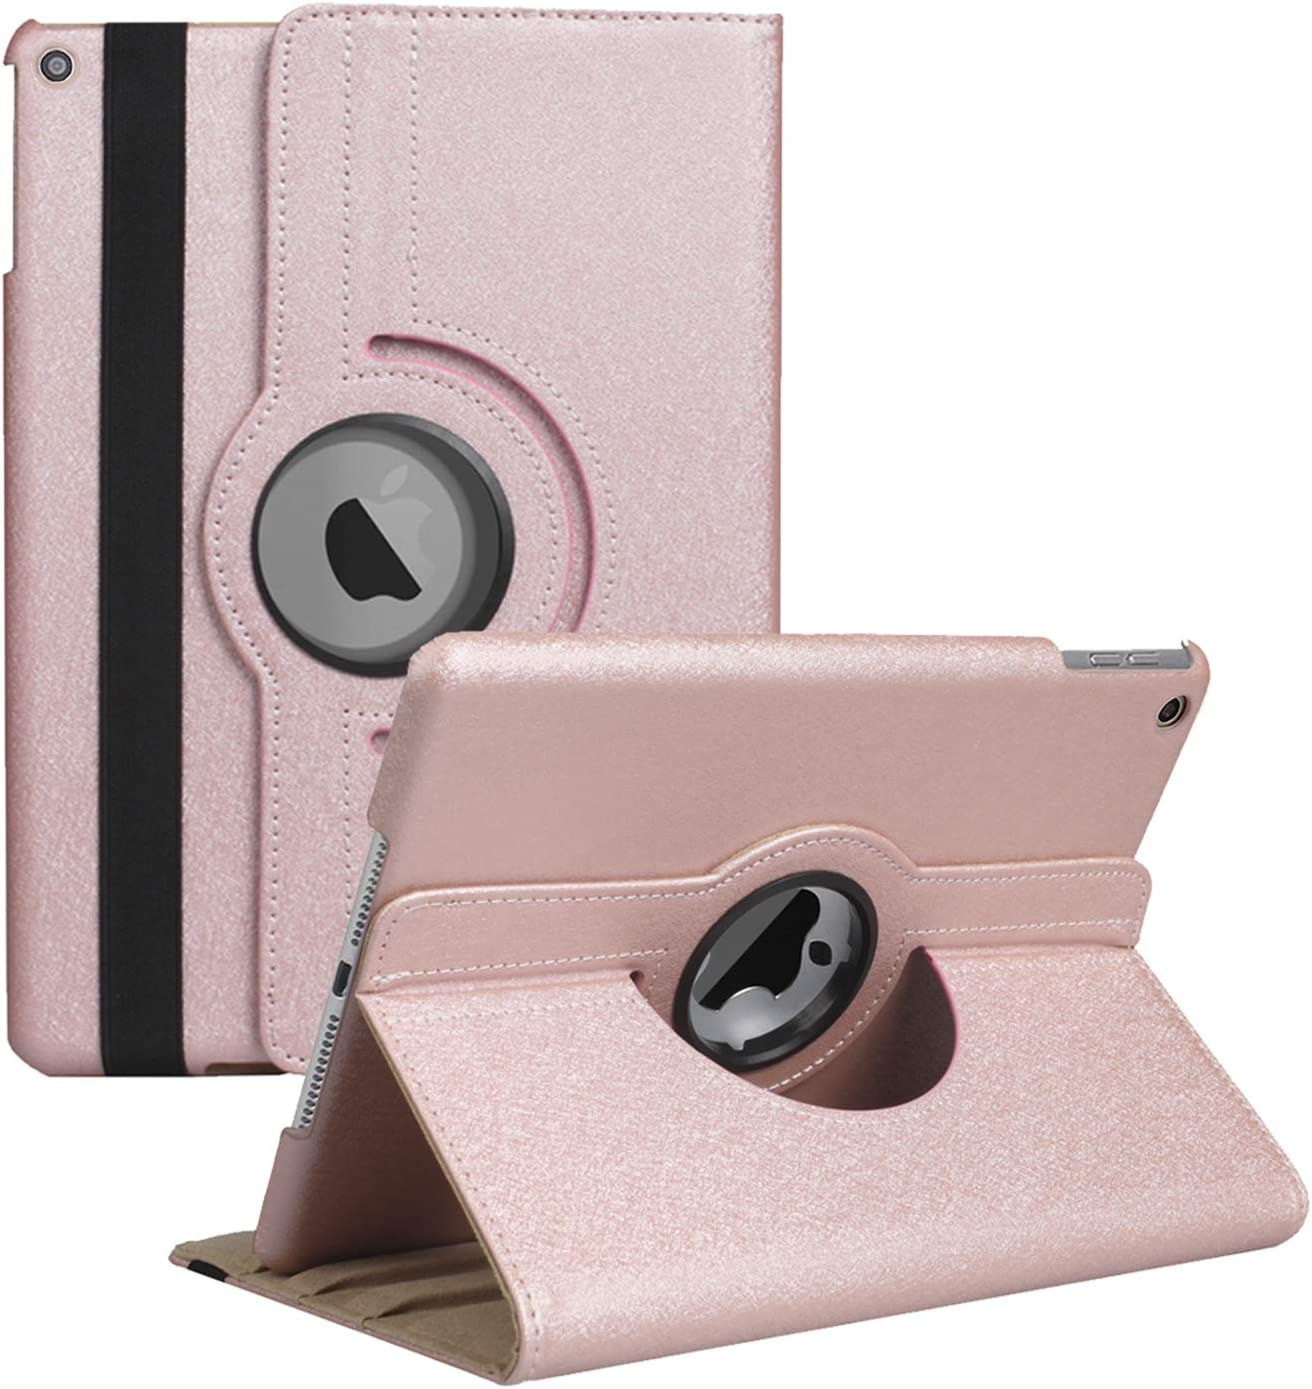 New iPad 8th Gen (2020) / 7th Generation (2019) 10.2 Inch Case - Rotating Stand Smart Cover Case with Auto Sleep Wake for Apple iPad 10.2